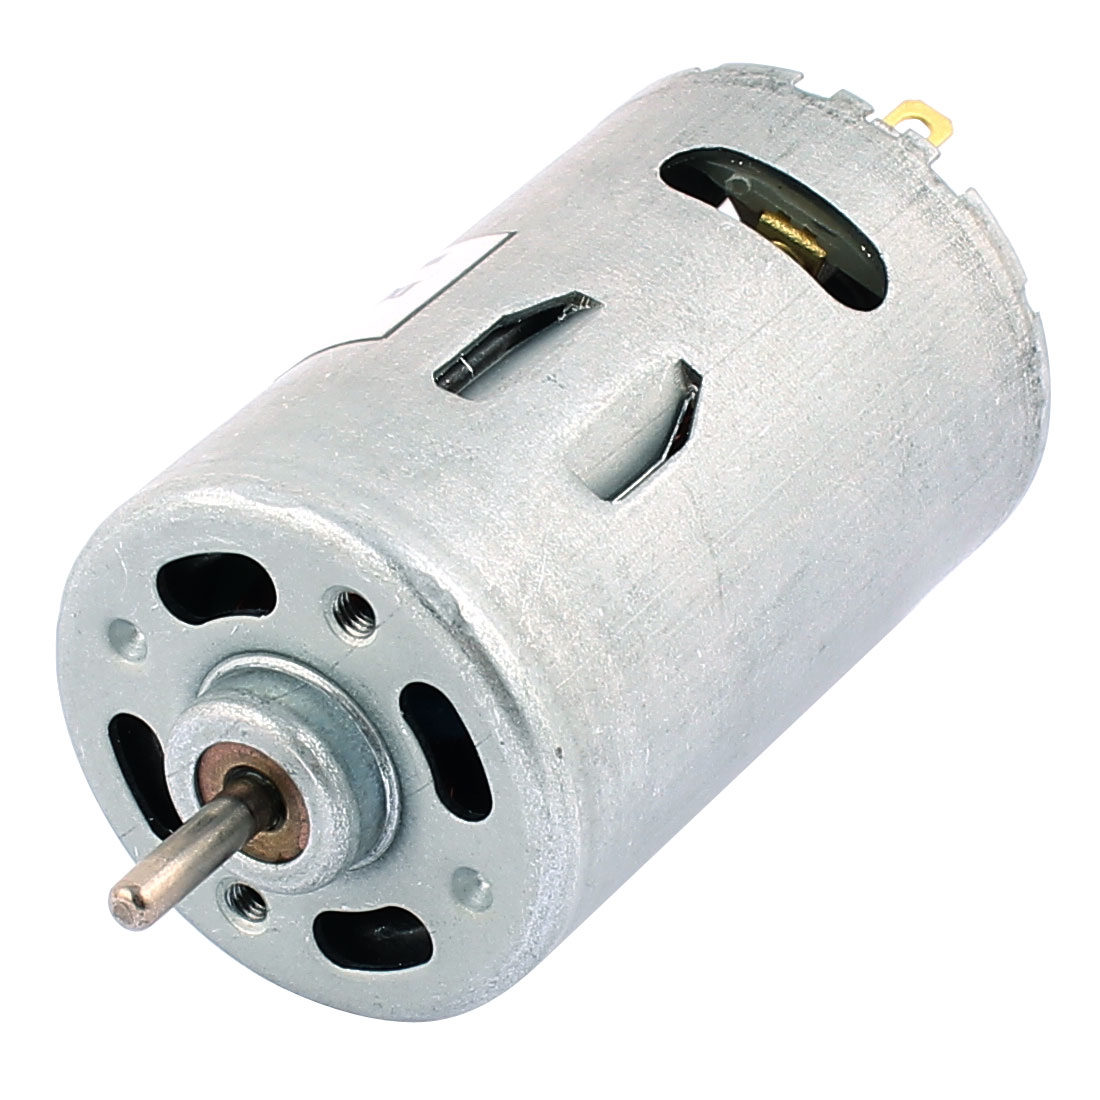 DC12V 6000R/Min Cylindrical Miniature Magnetic Direct Current Gear Motor R555